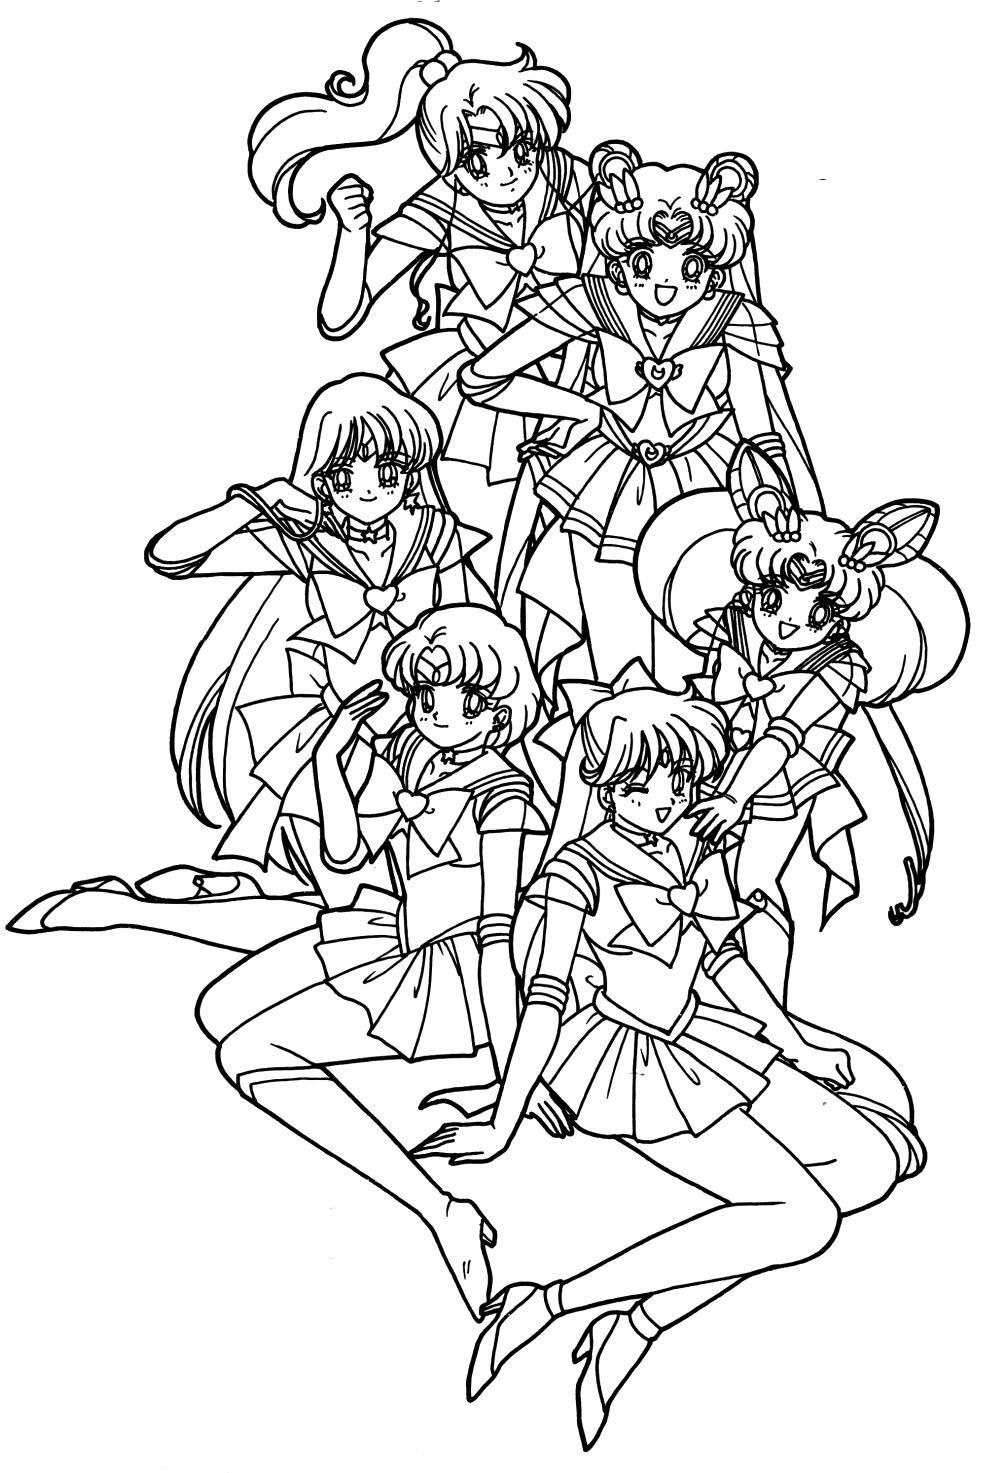 Sailor Moon Coloring Pages For 2019 Http Www Wallpaperartdesignhd Us Sailor Moon Coloring Pages Moon Coloring Pages Sailor Moon Coloring Pages Coloring Books